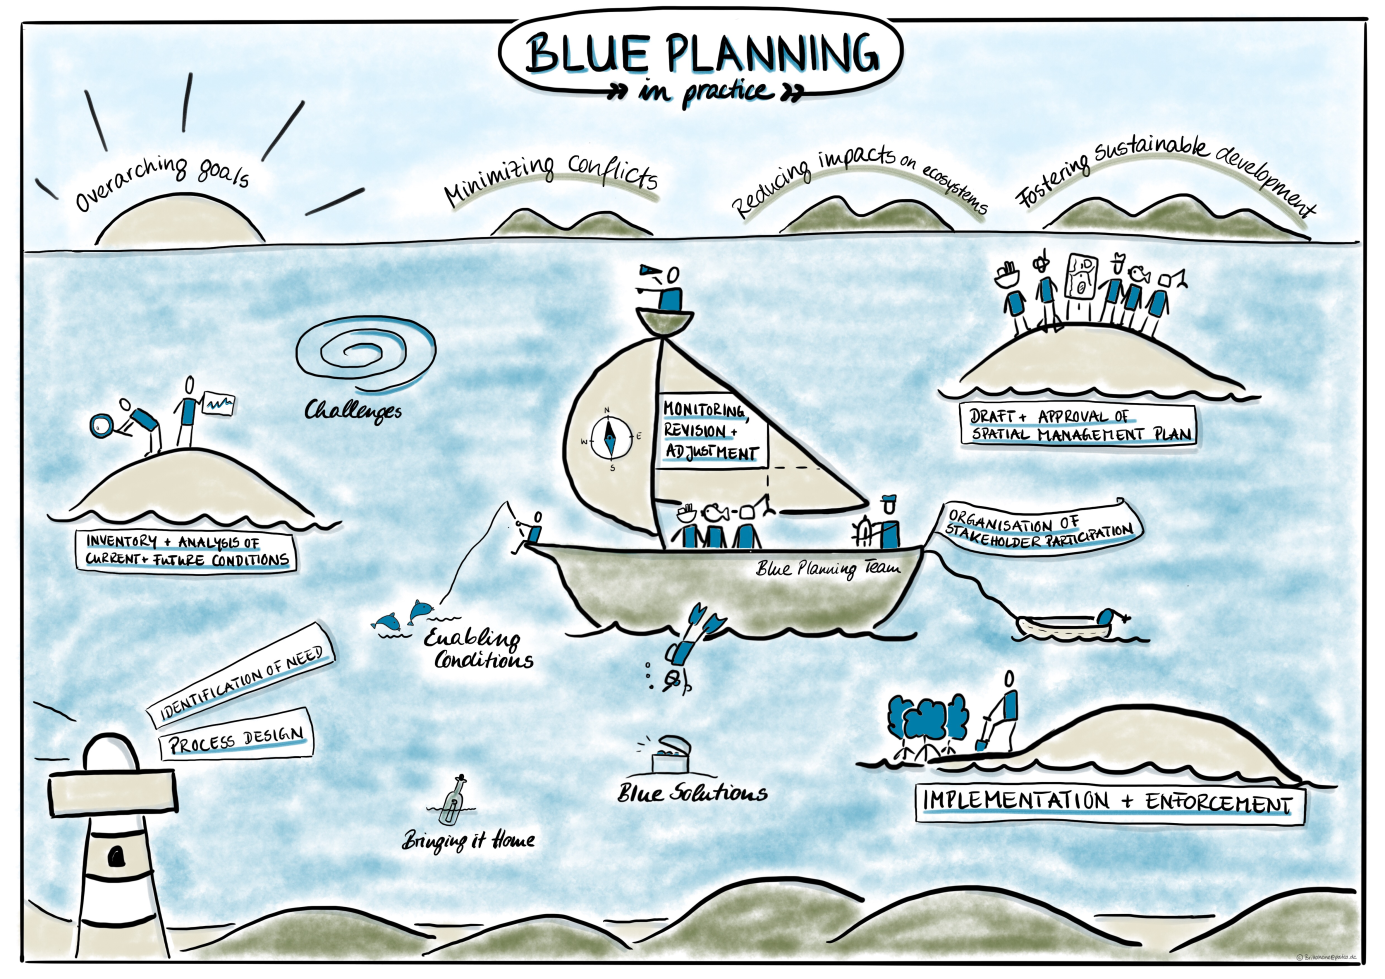 New Blue Solutions Training – Blue Planning in Practice